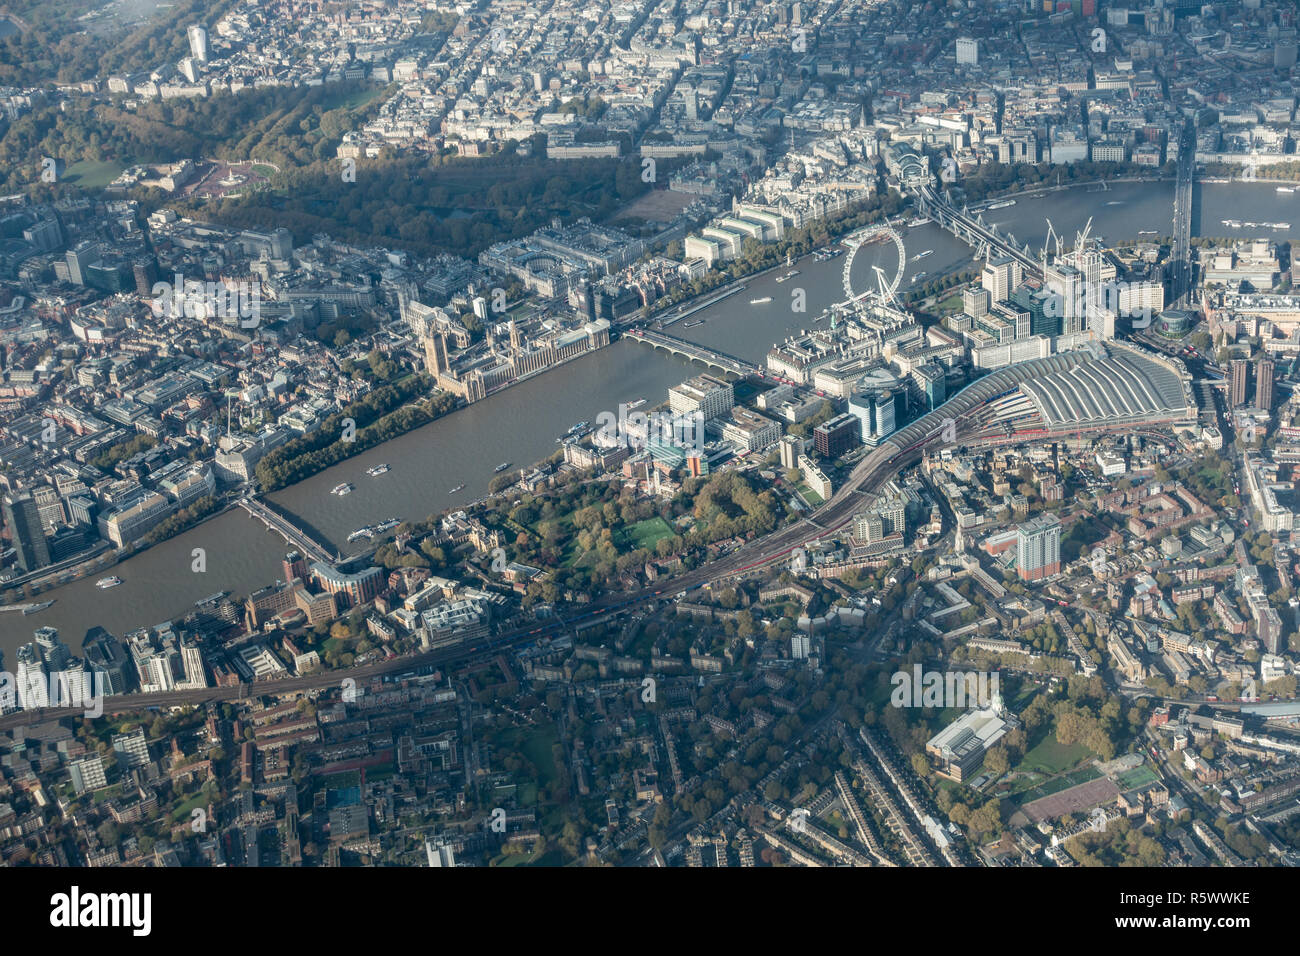 London aerial shot showing key tourist attractions and places including Buckingham Palace, Nelson's column and the Houses of Parliament - Stock Image